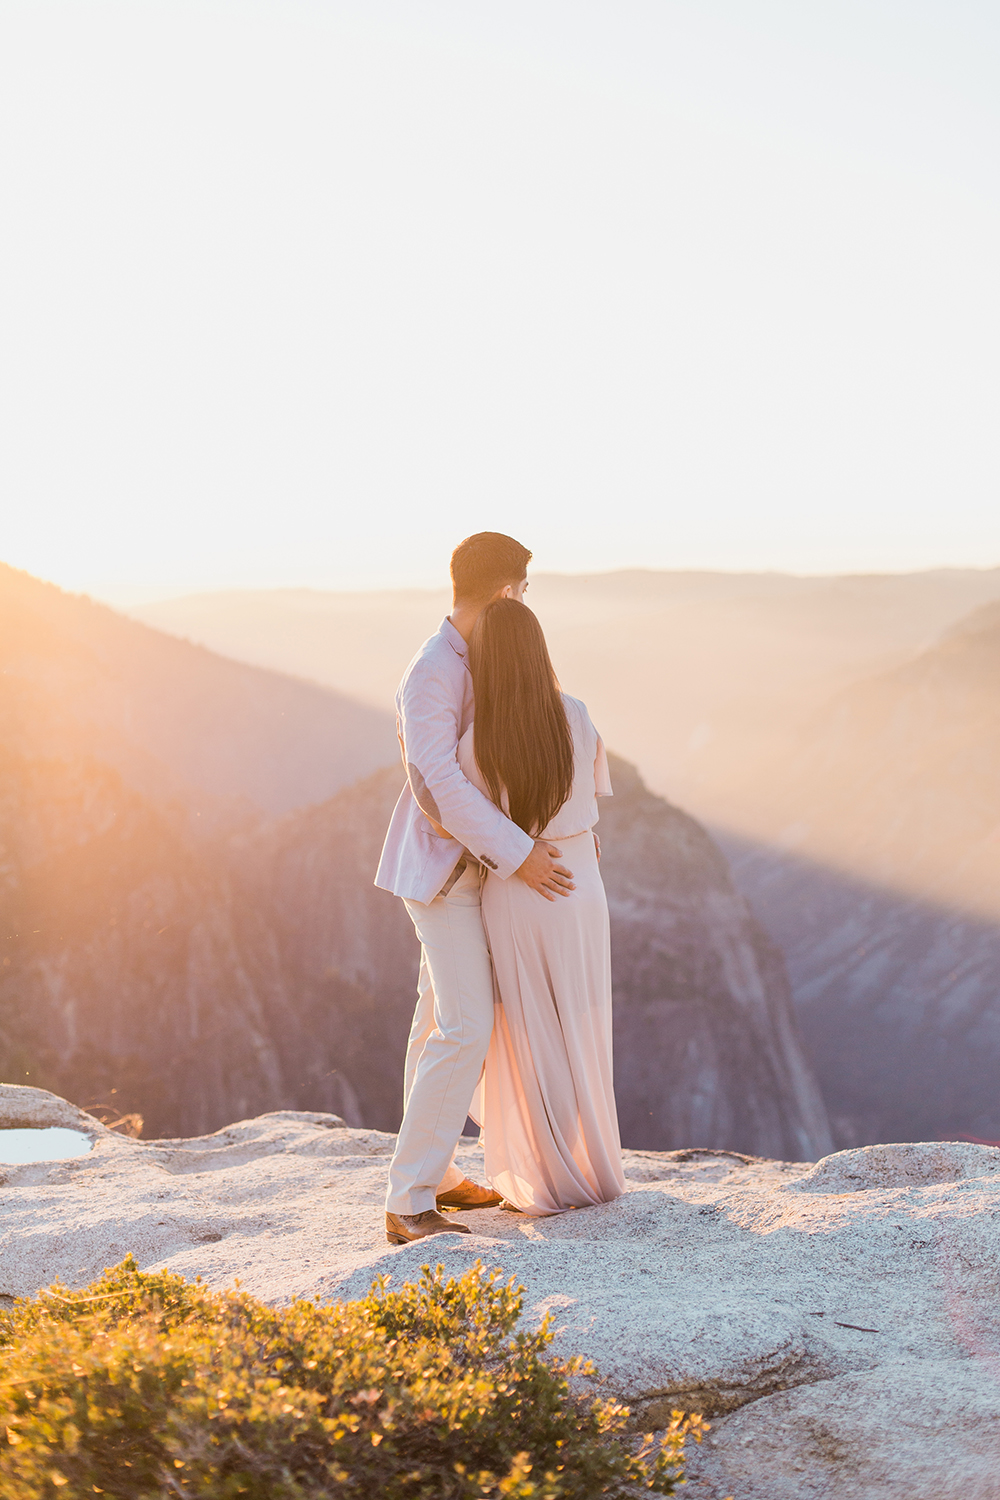 yosemite-engagement-dulce-migue-16.html